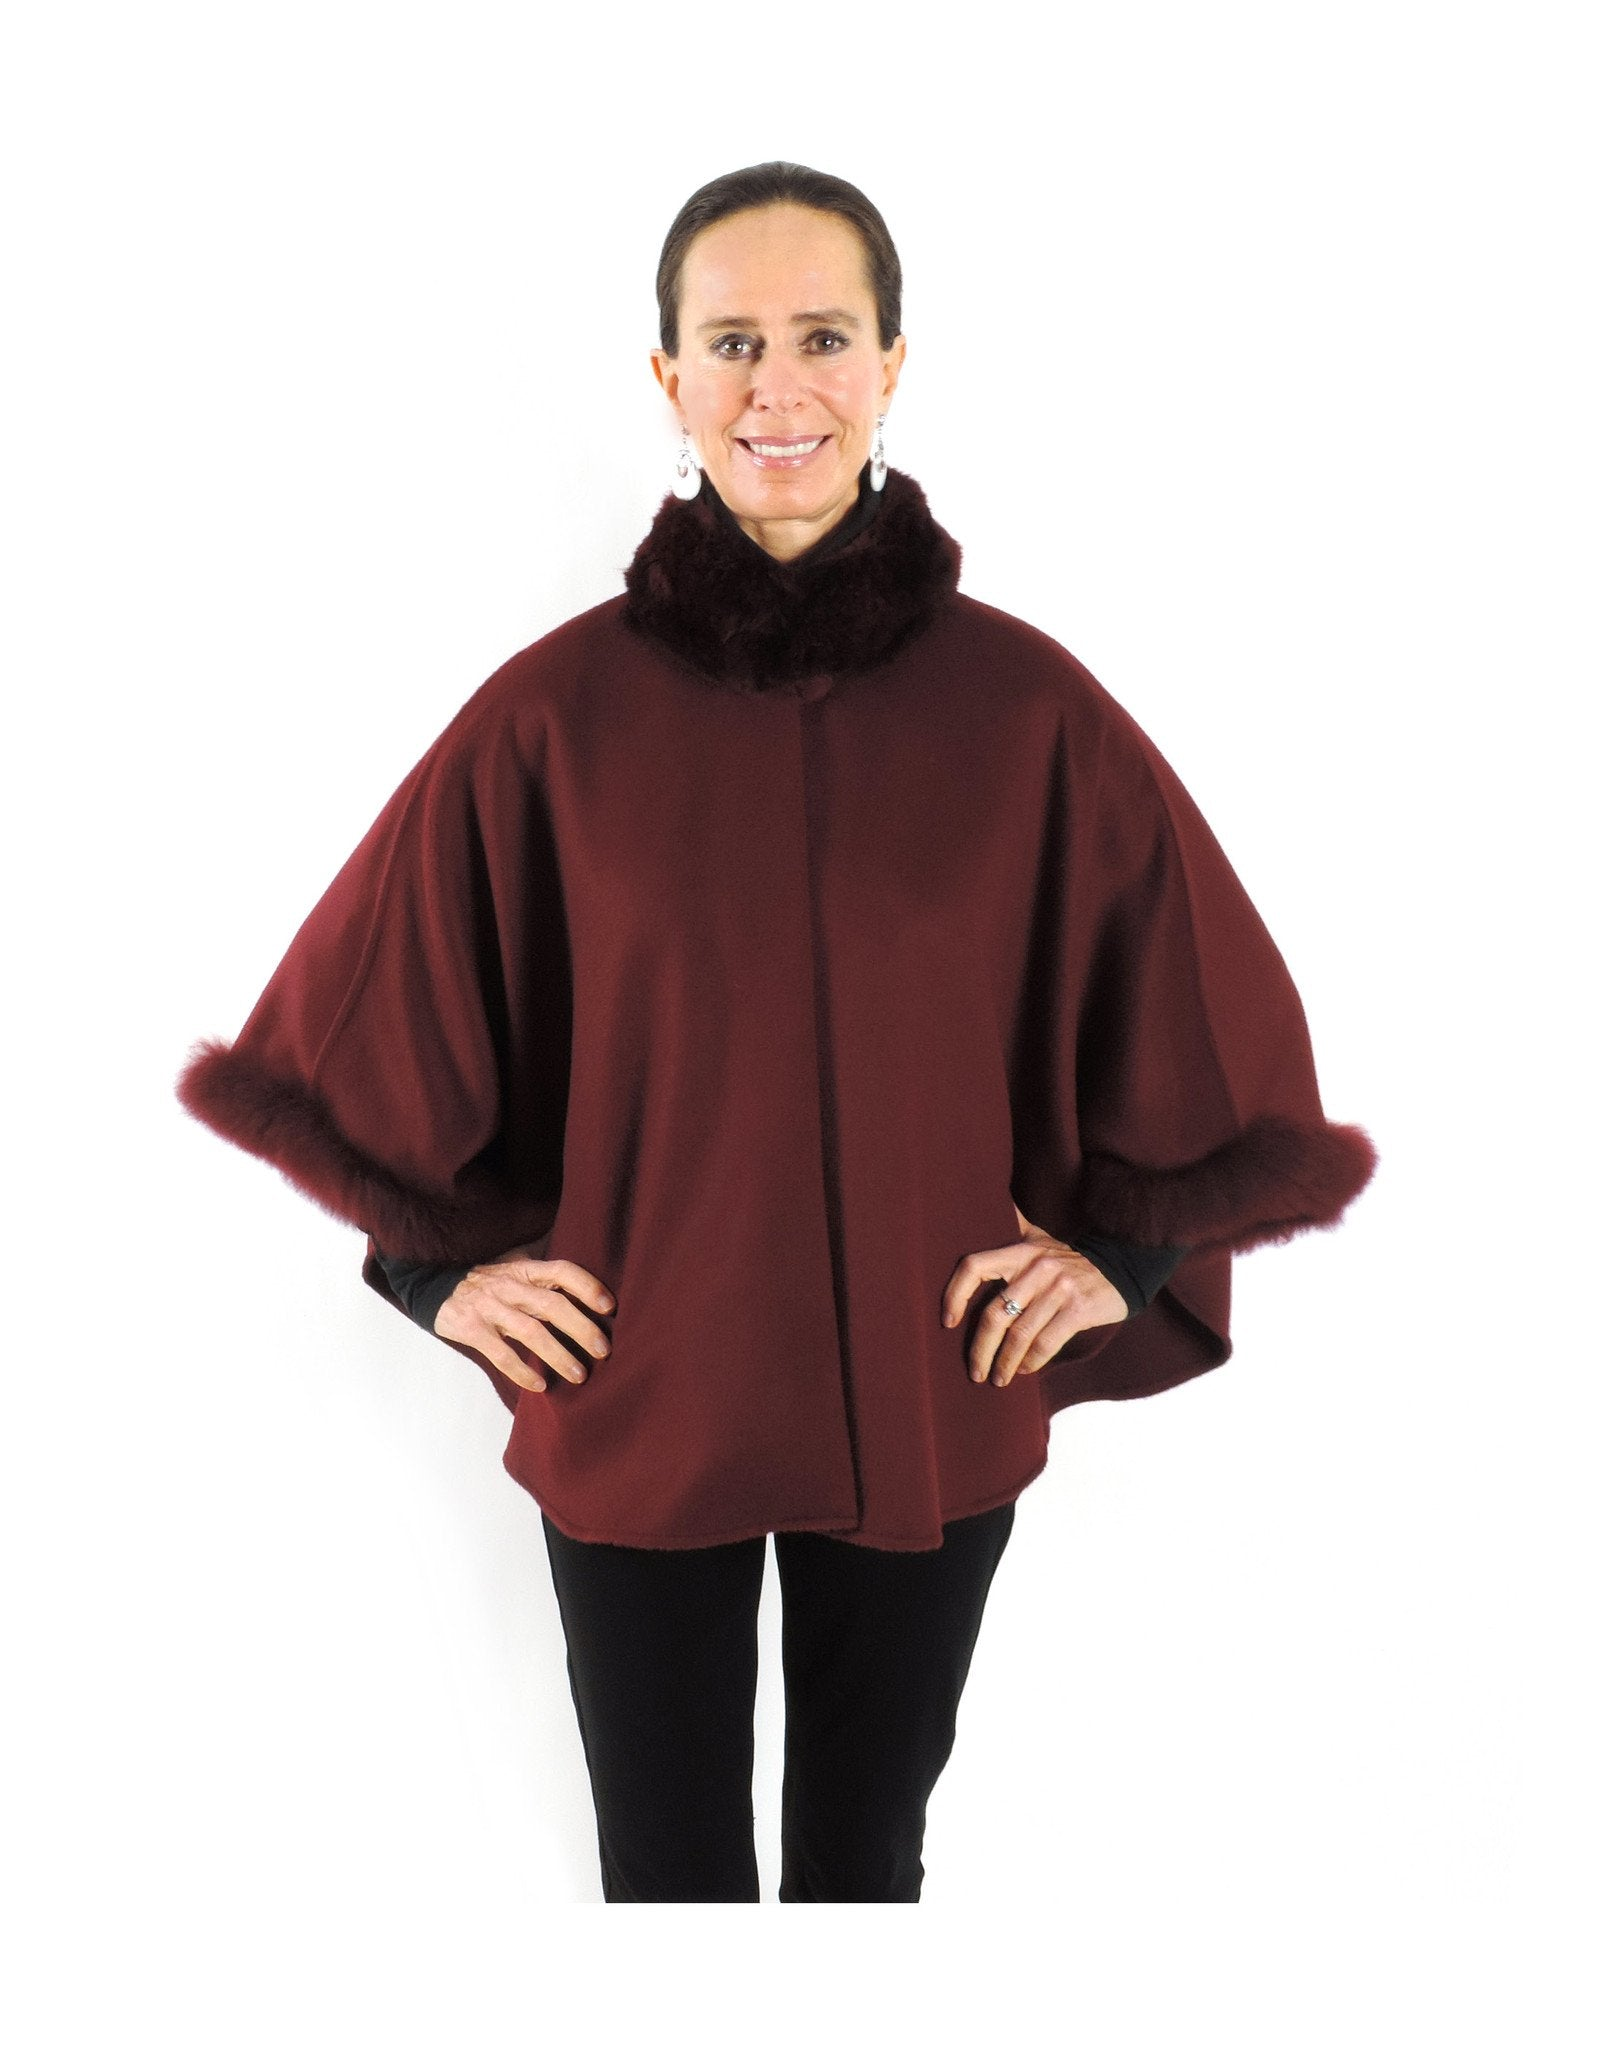 Baby Alpaca Cape with Fur Collar and Sleeves - Burgundy - Qinti - The Peruvian Shop